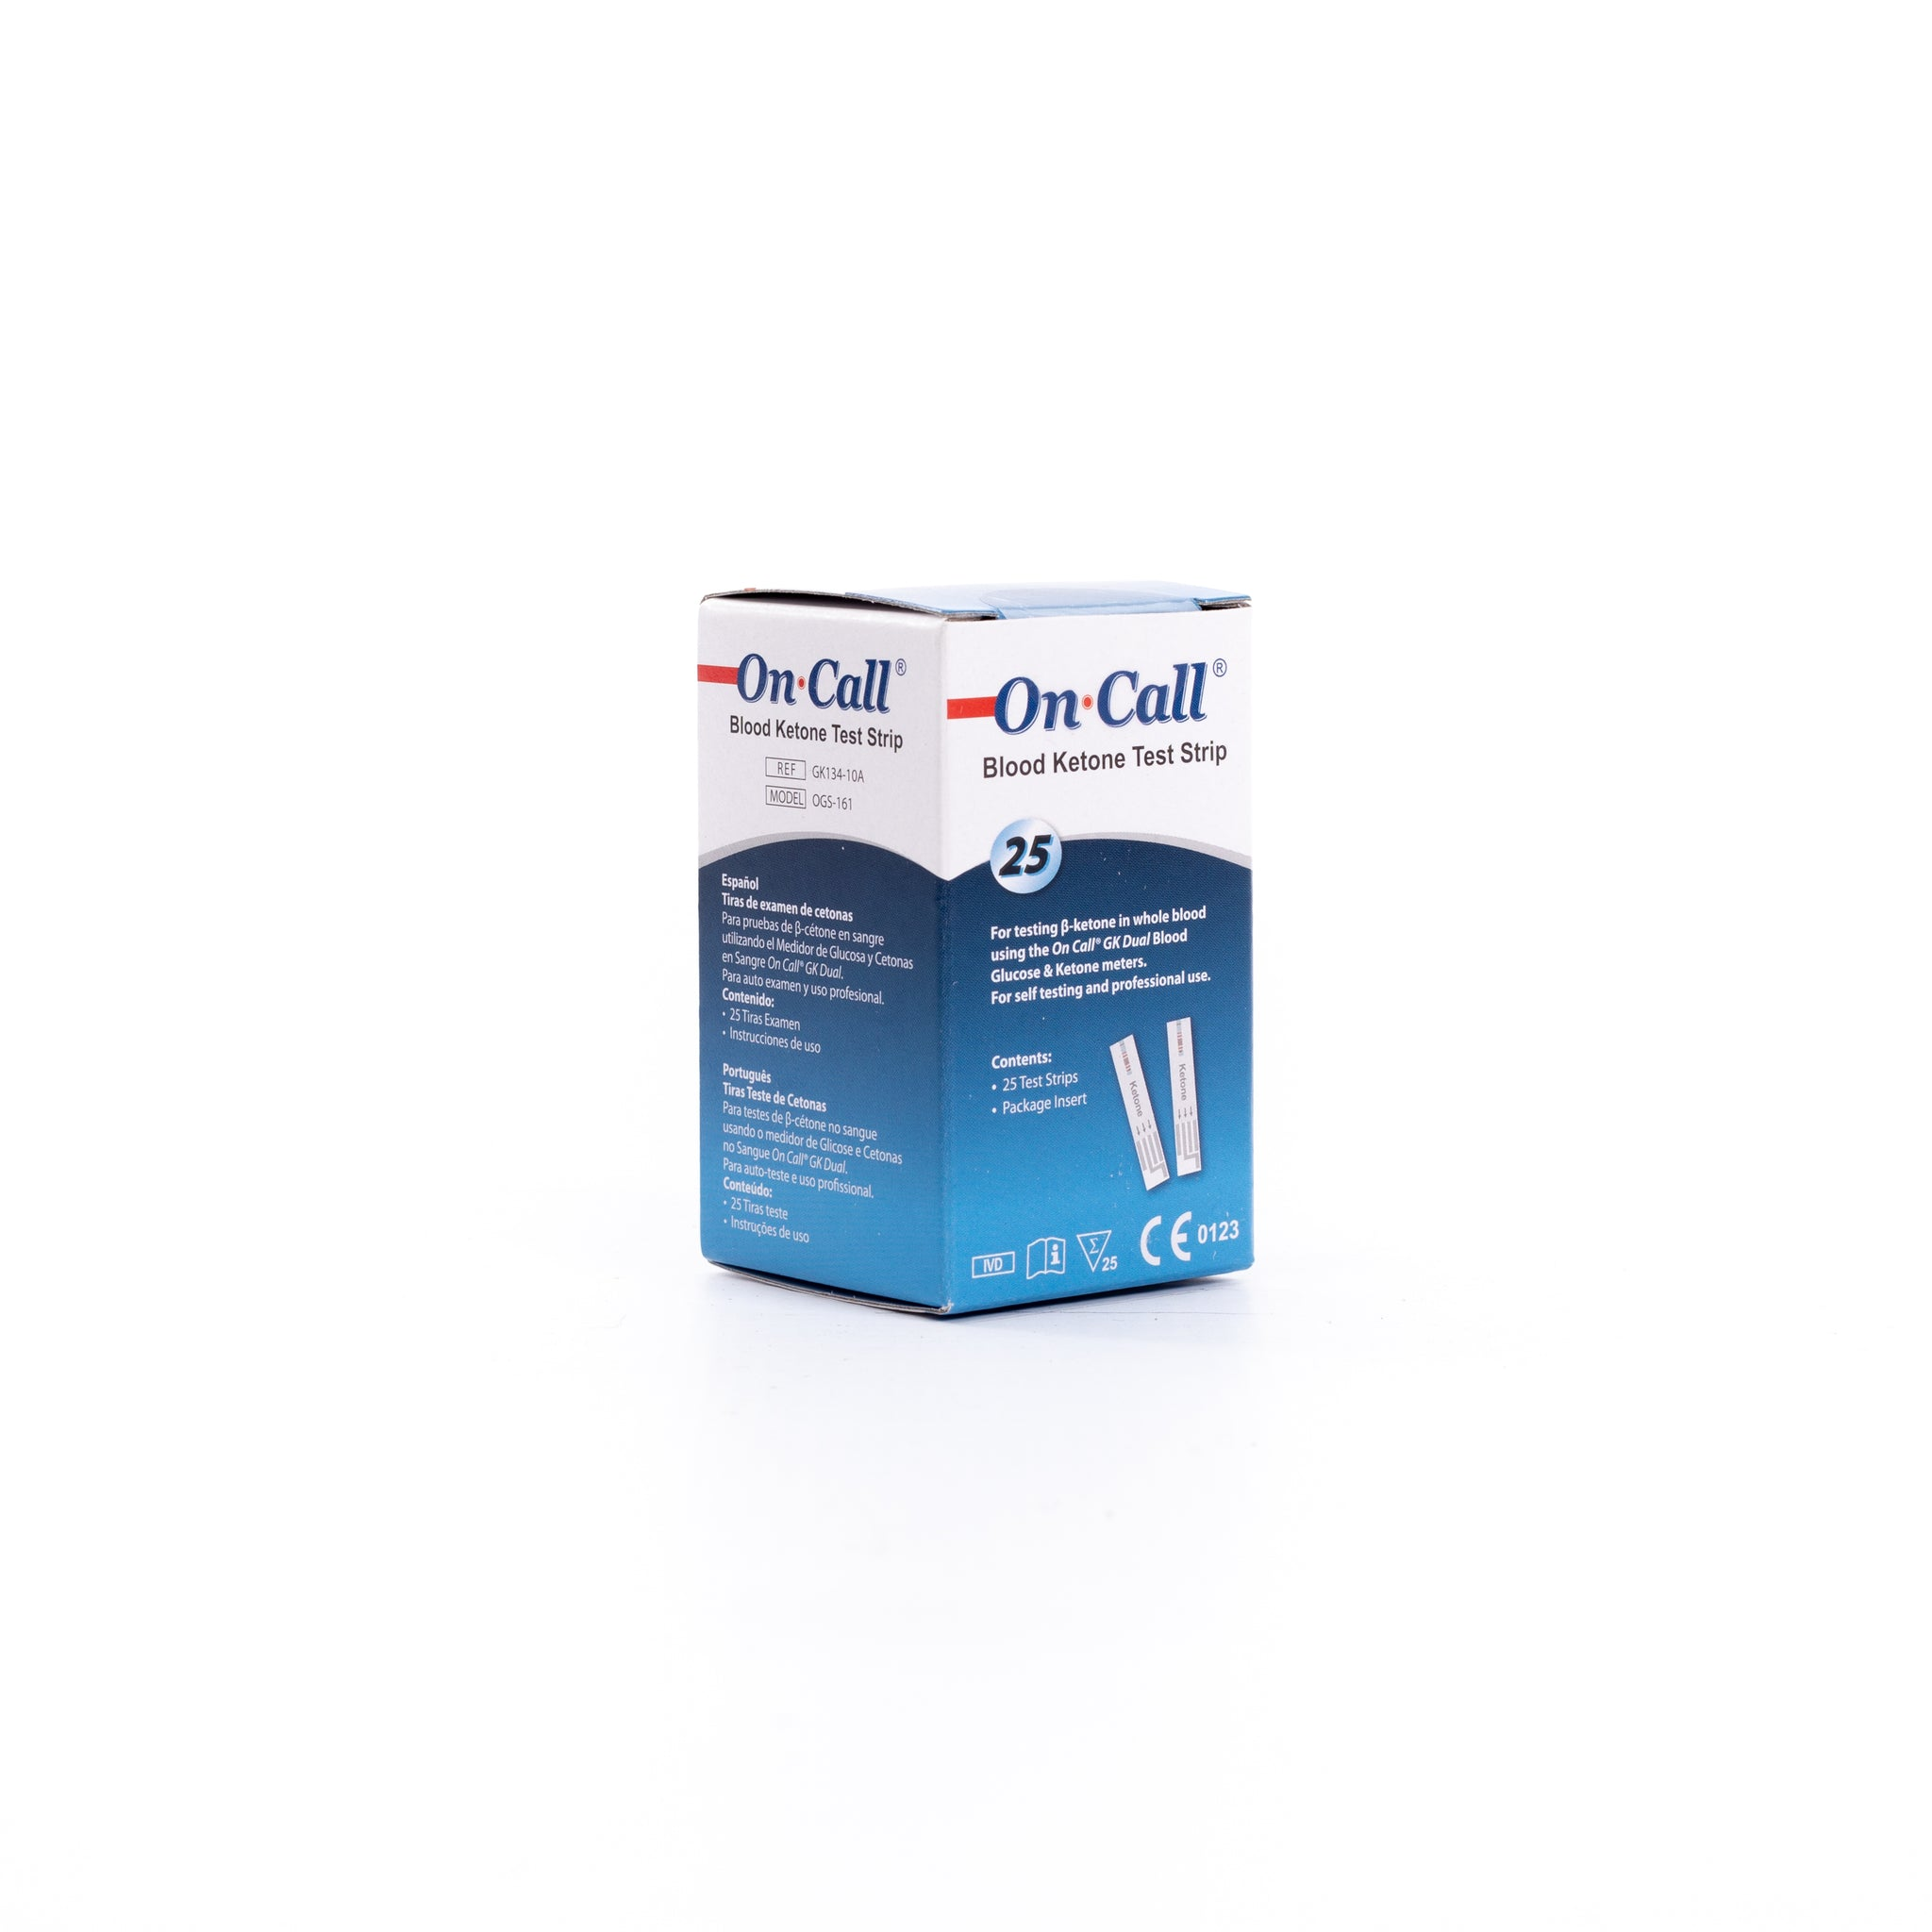 On Call® GK Dual Blood Ketone Test Strips (25)